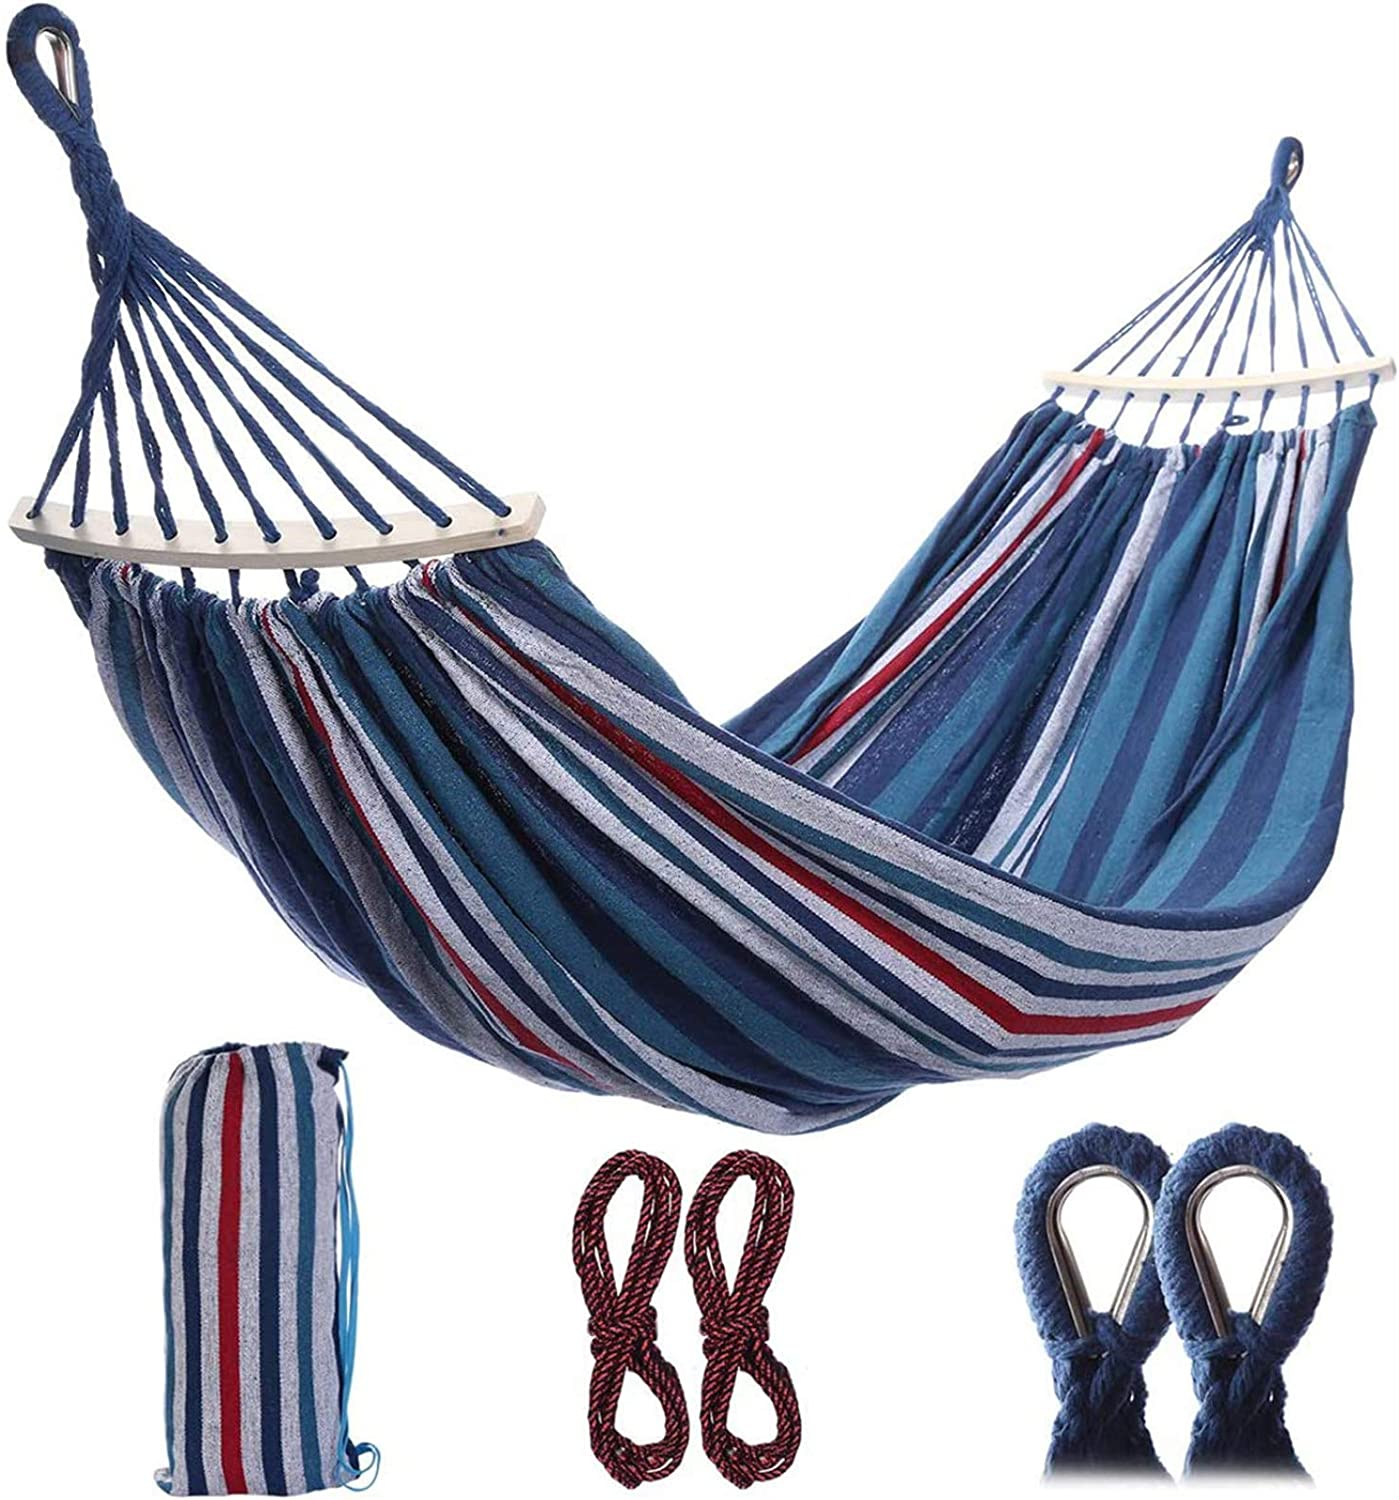 "HD-IPC Double Camping Hammock, Portable 2-Person Brazilian Style Hammock Outdoor/Indoor Canvas Cotton Hammock Bed with Carry Bag (98"" x 59"")"